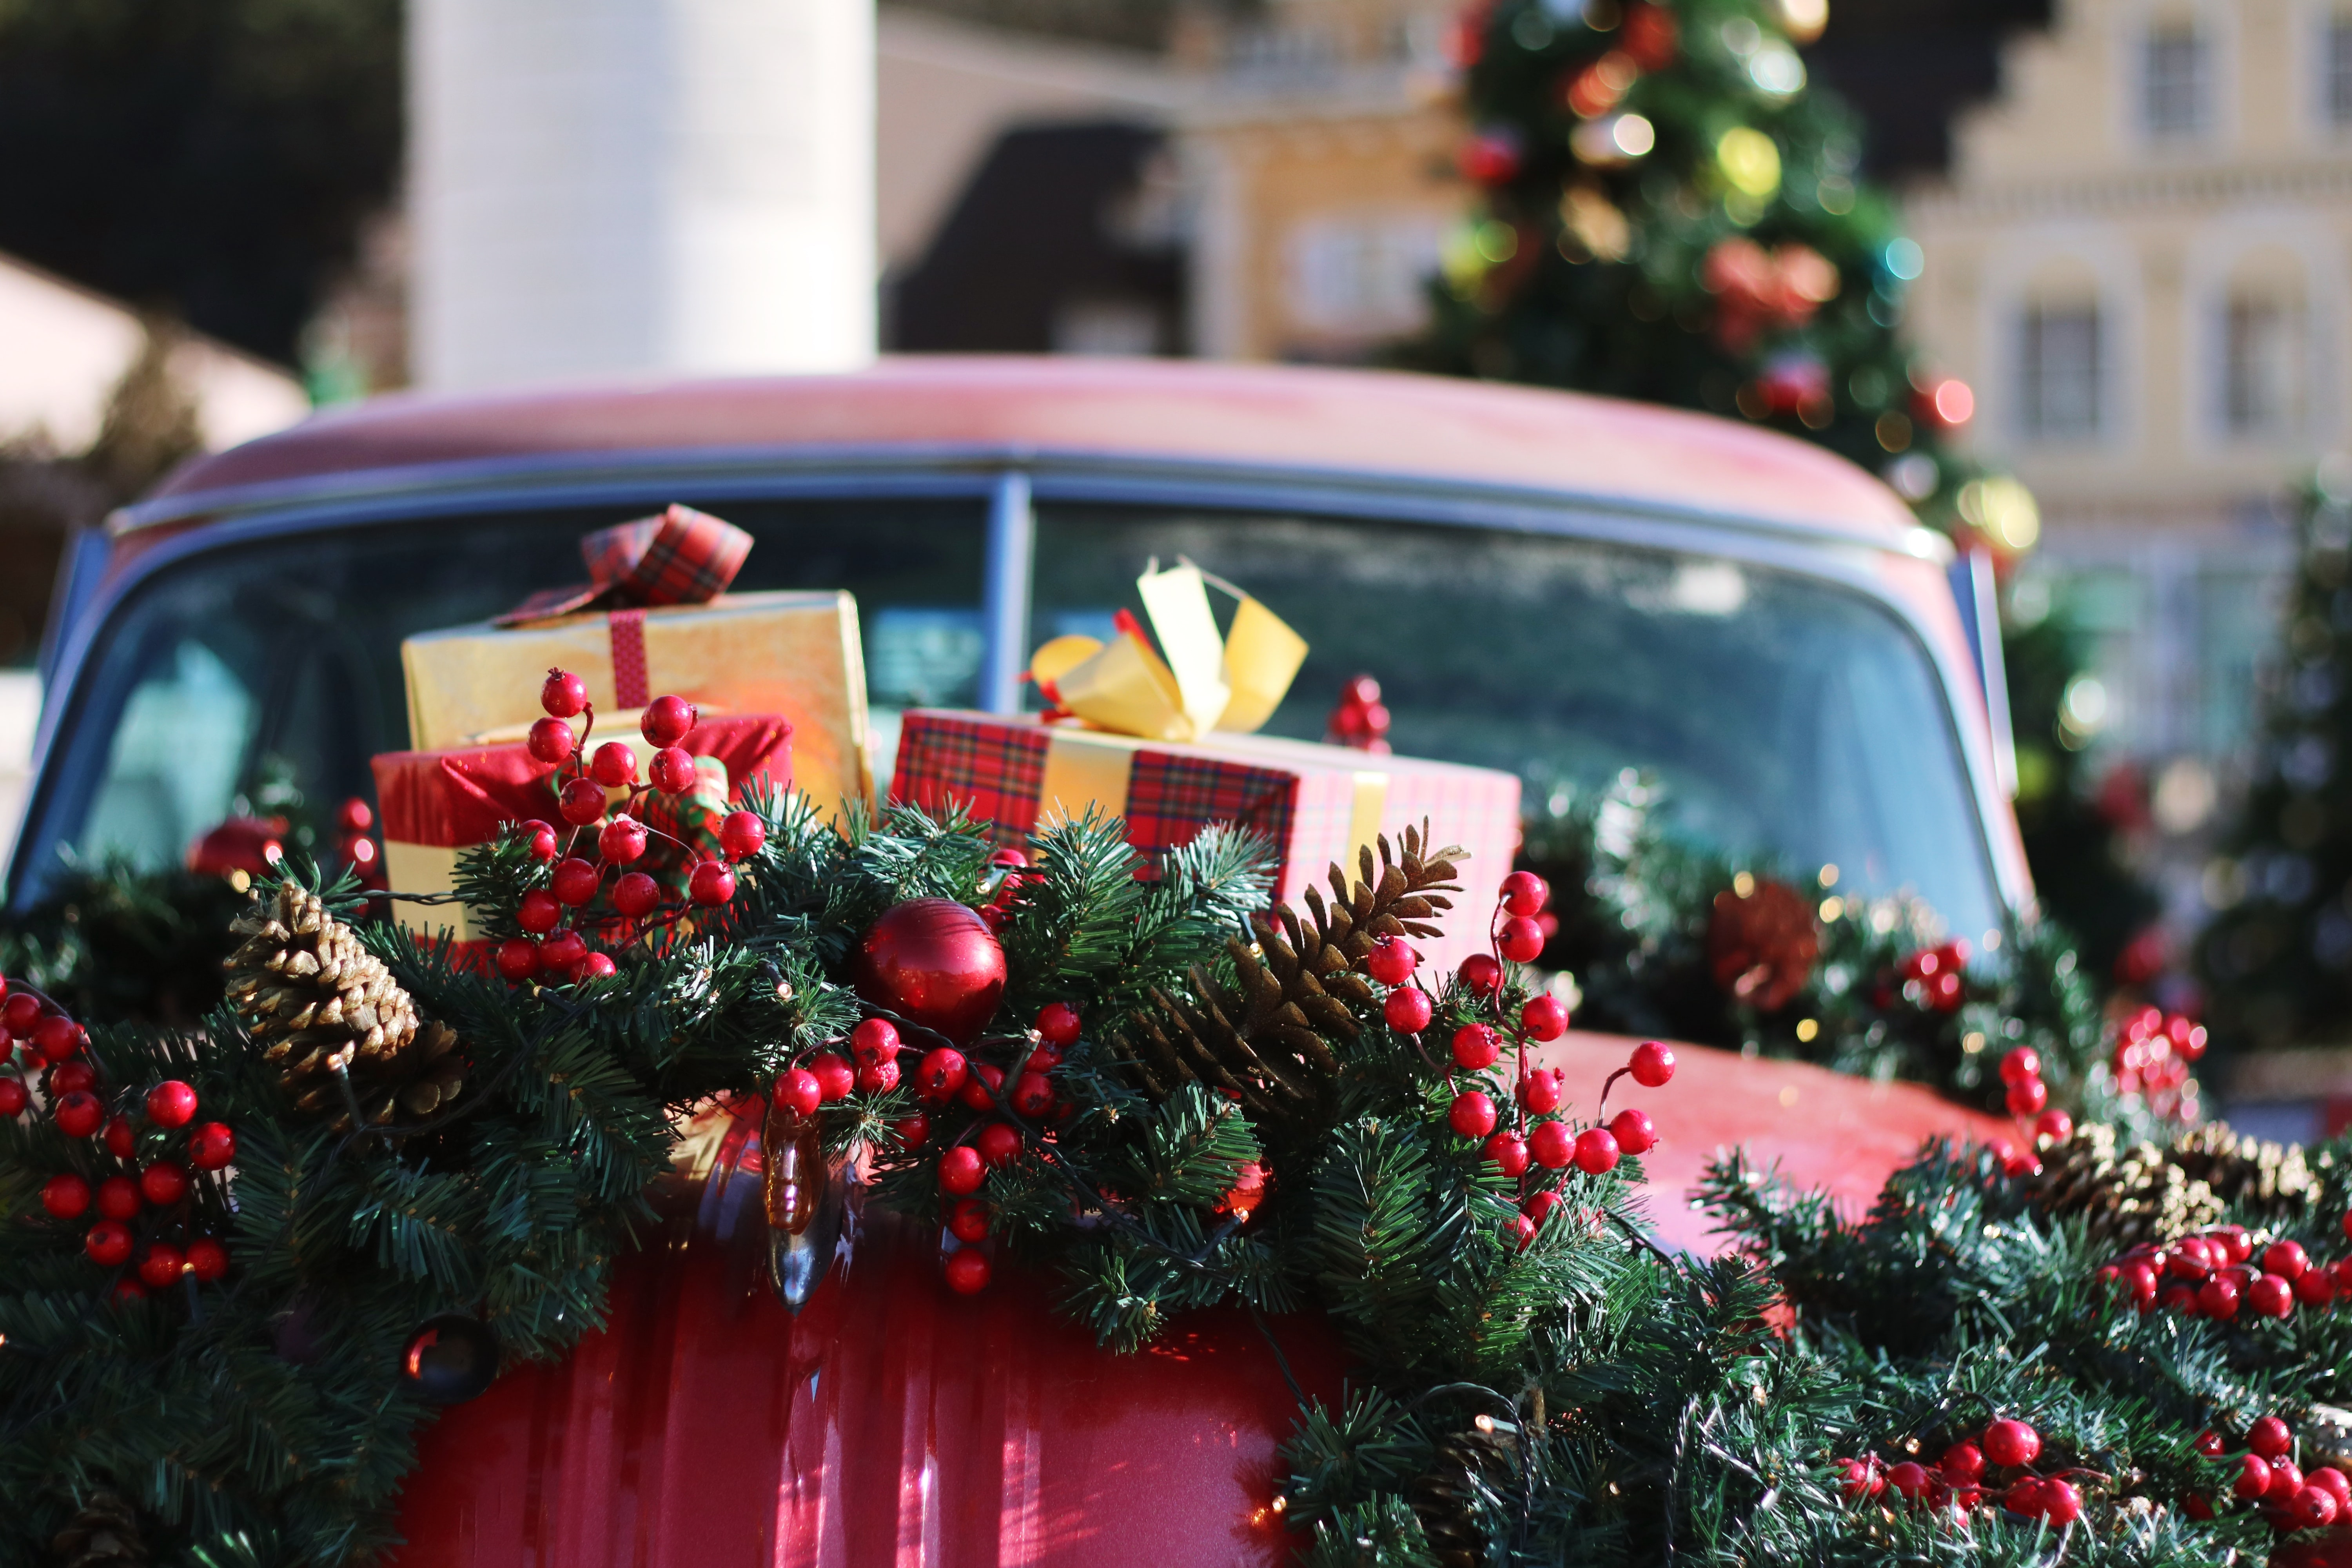 green and red wreath on red car